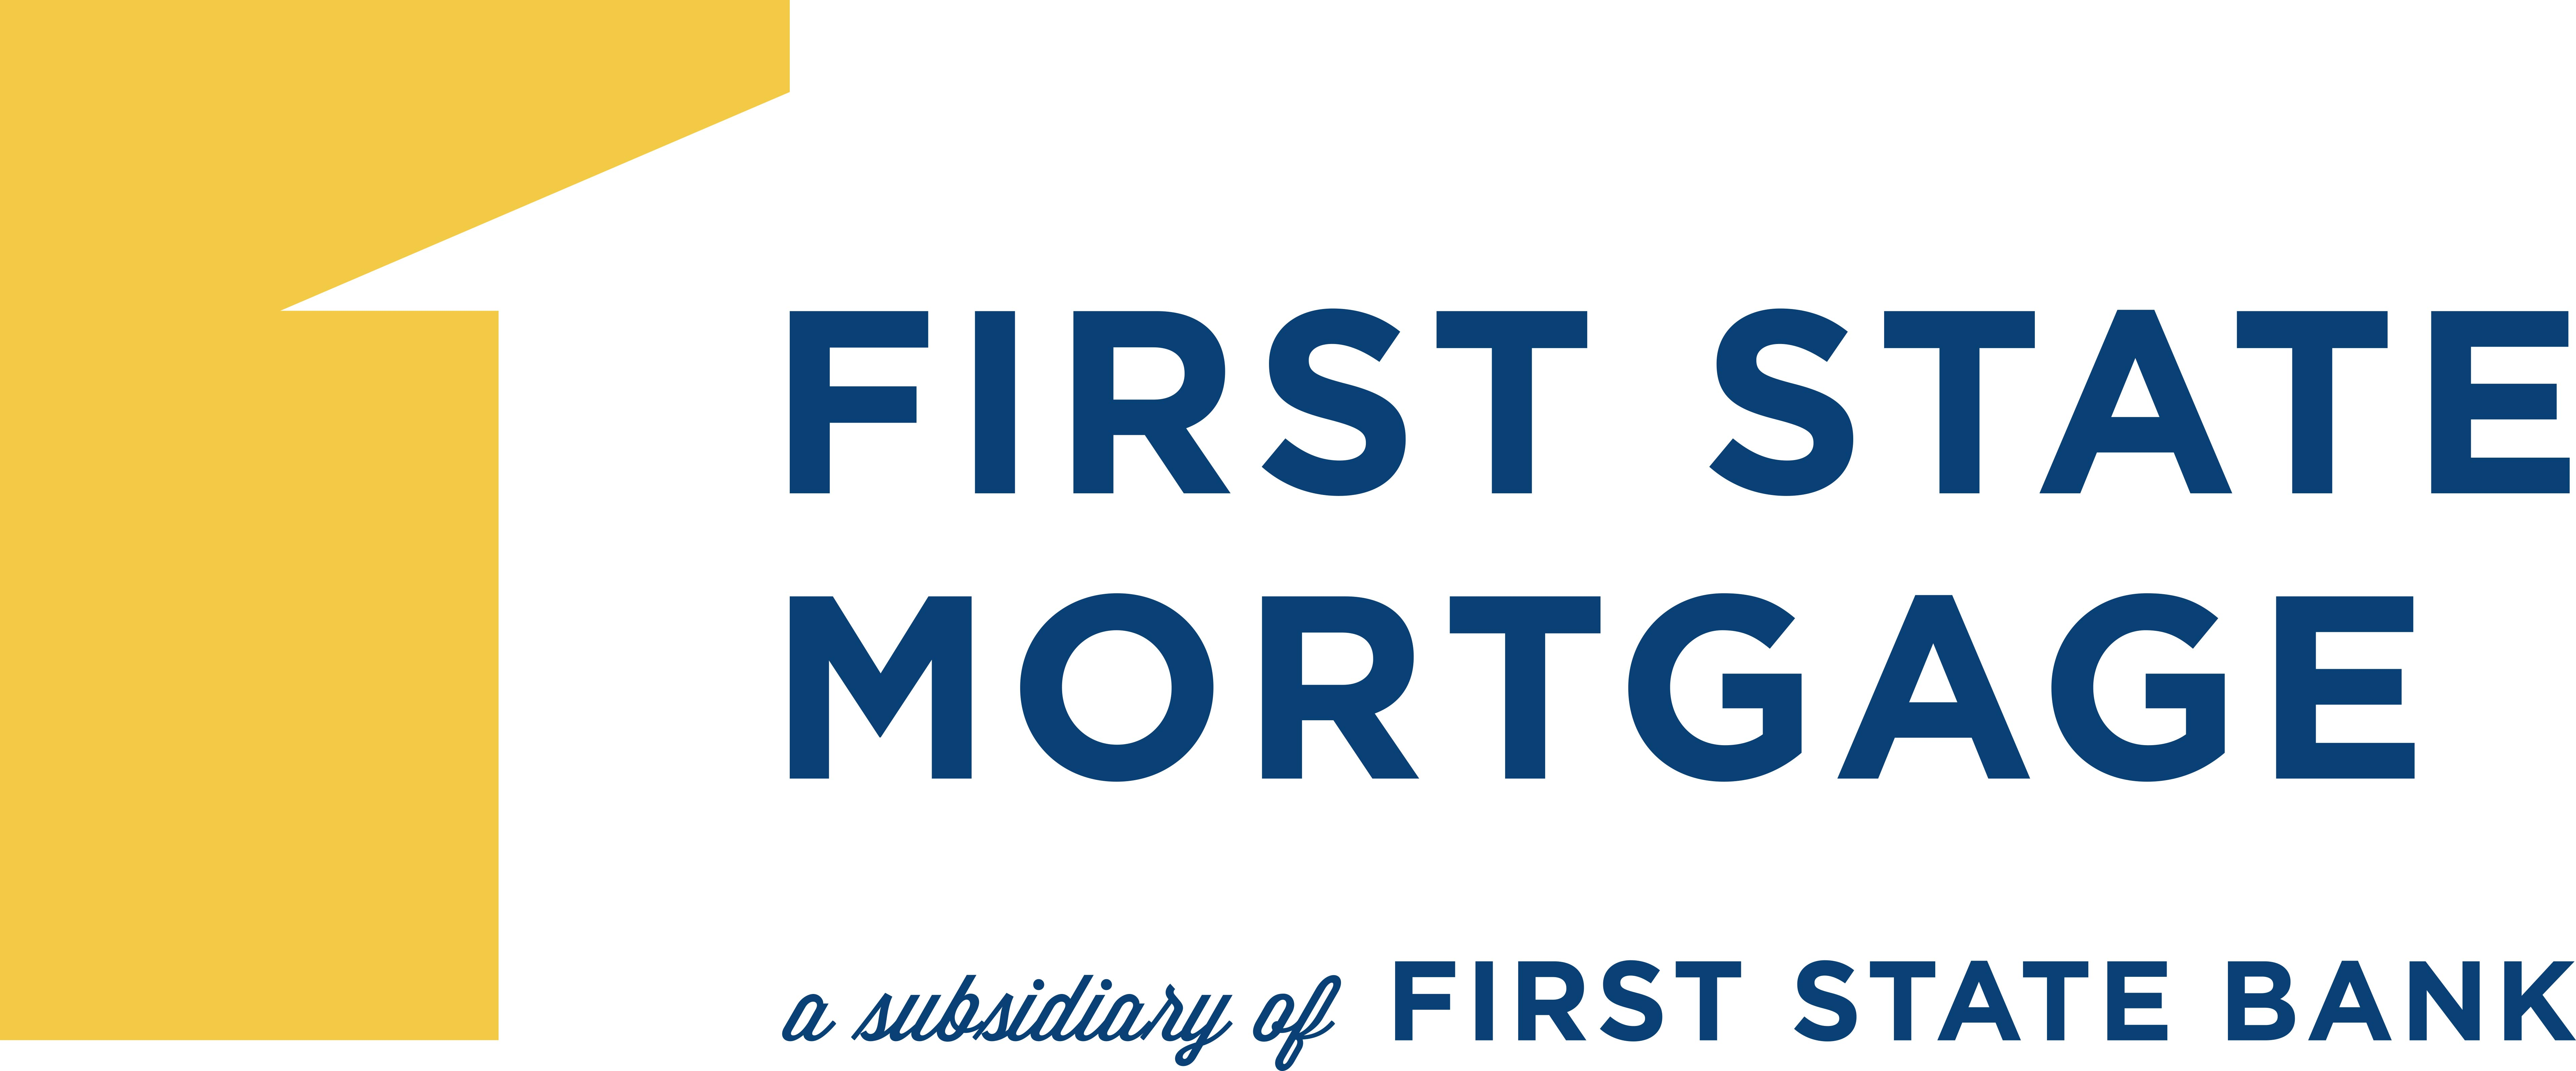 First State Mortgage (Sponsor)